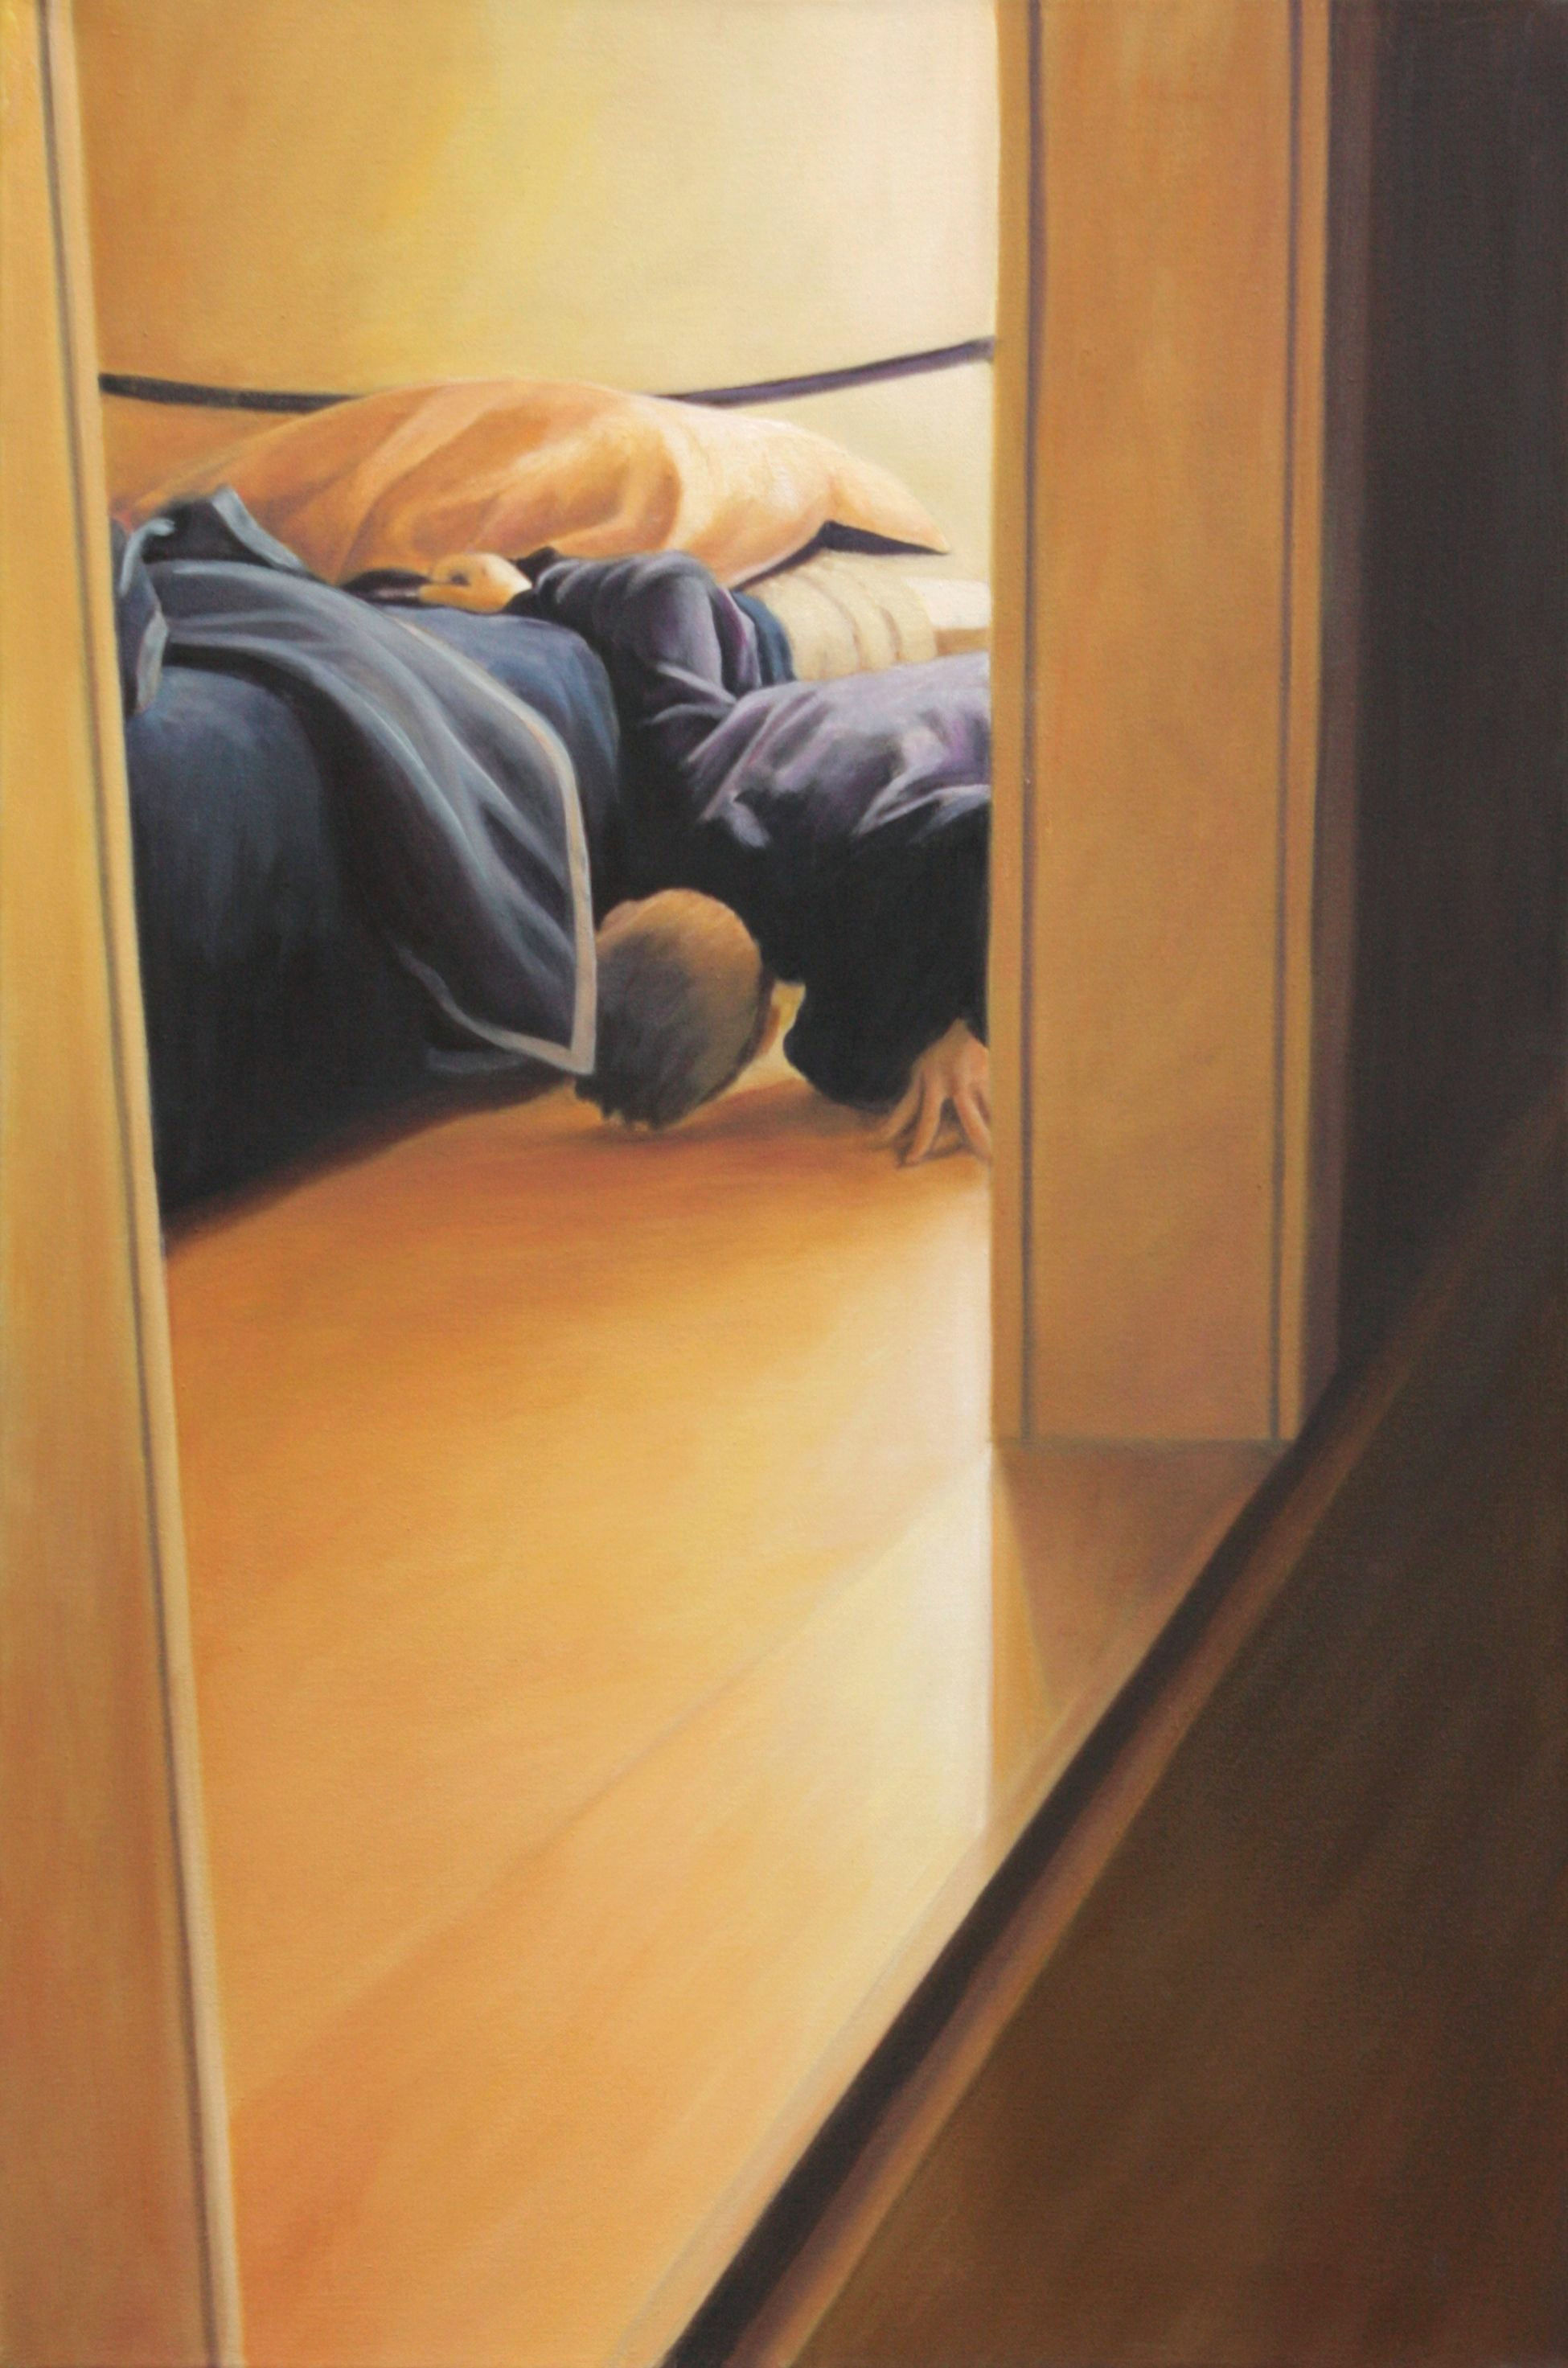 Asf barbara lidfors the boy and the bed   nr. 2   original painting m1ibgt